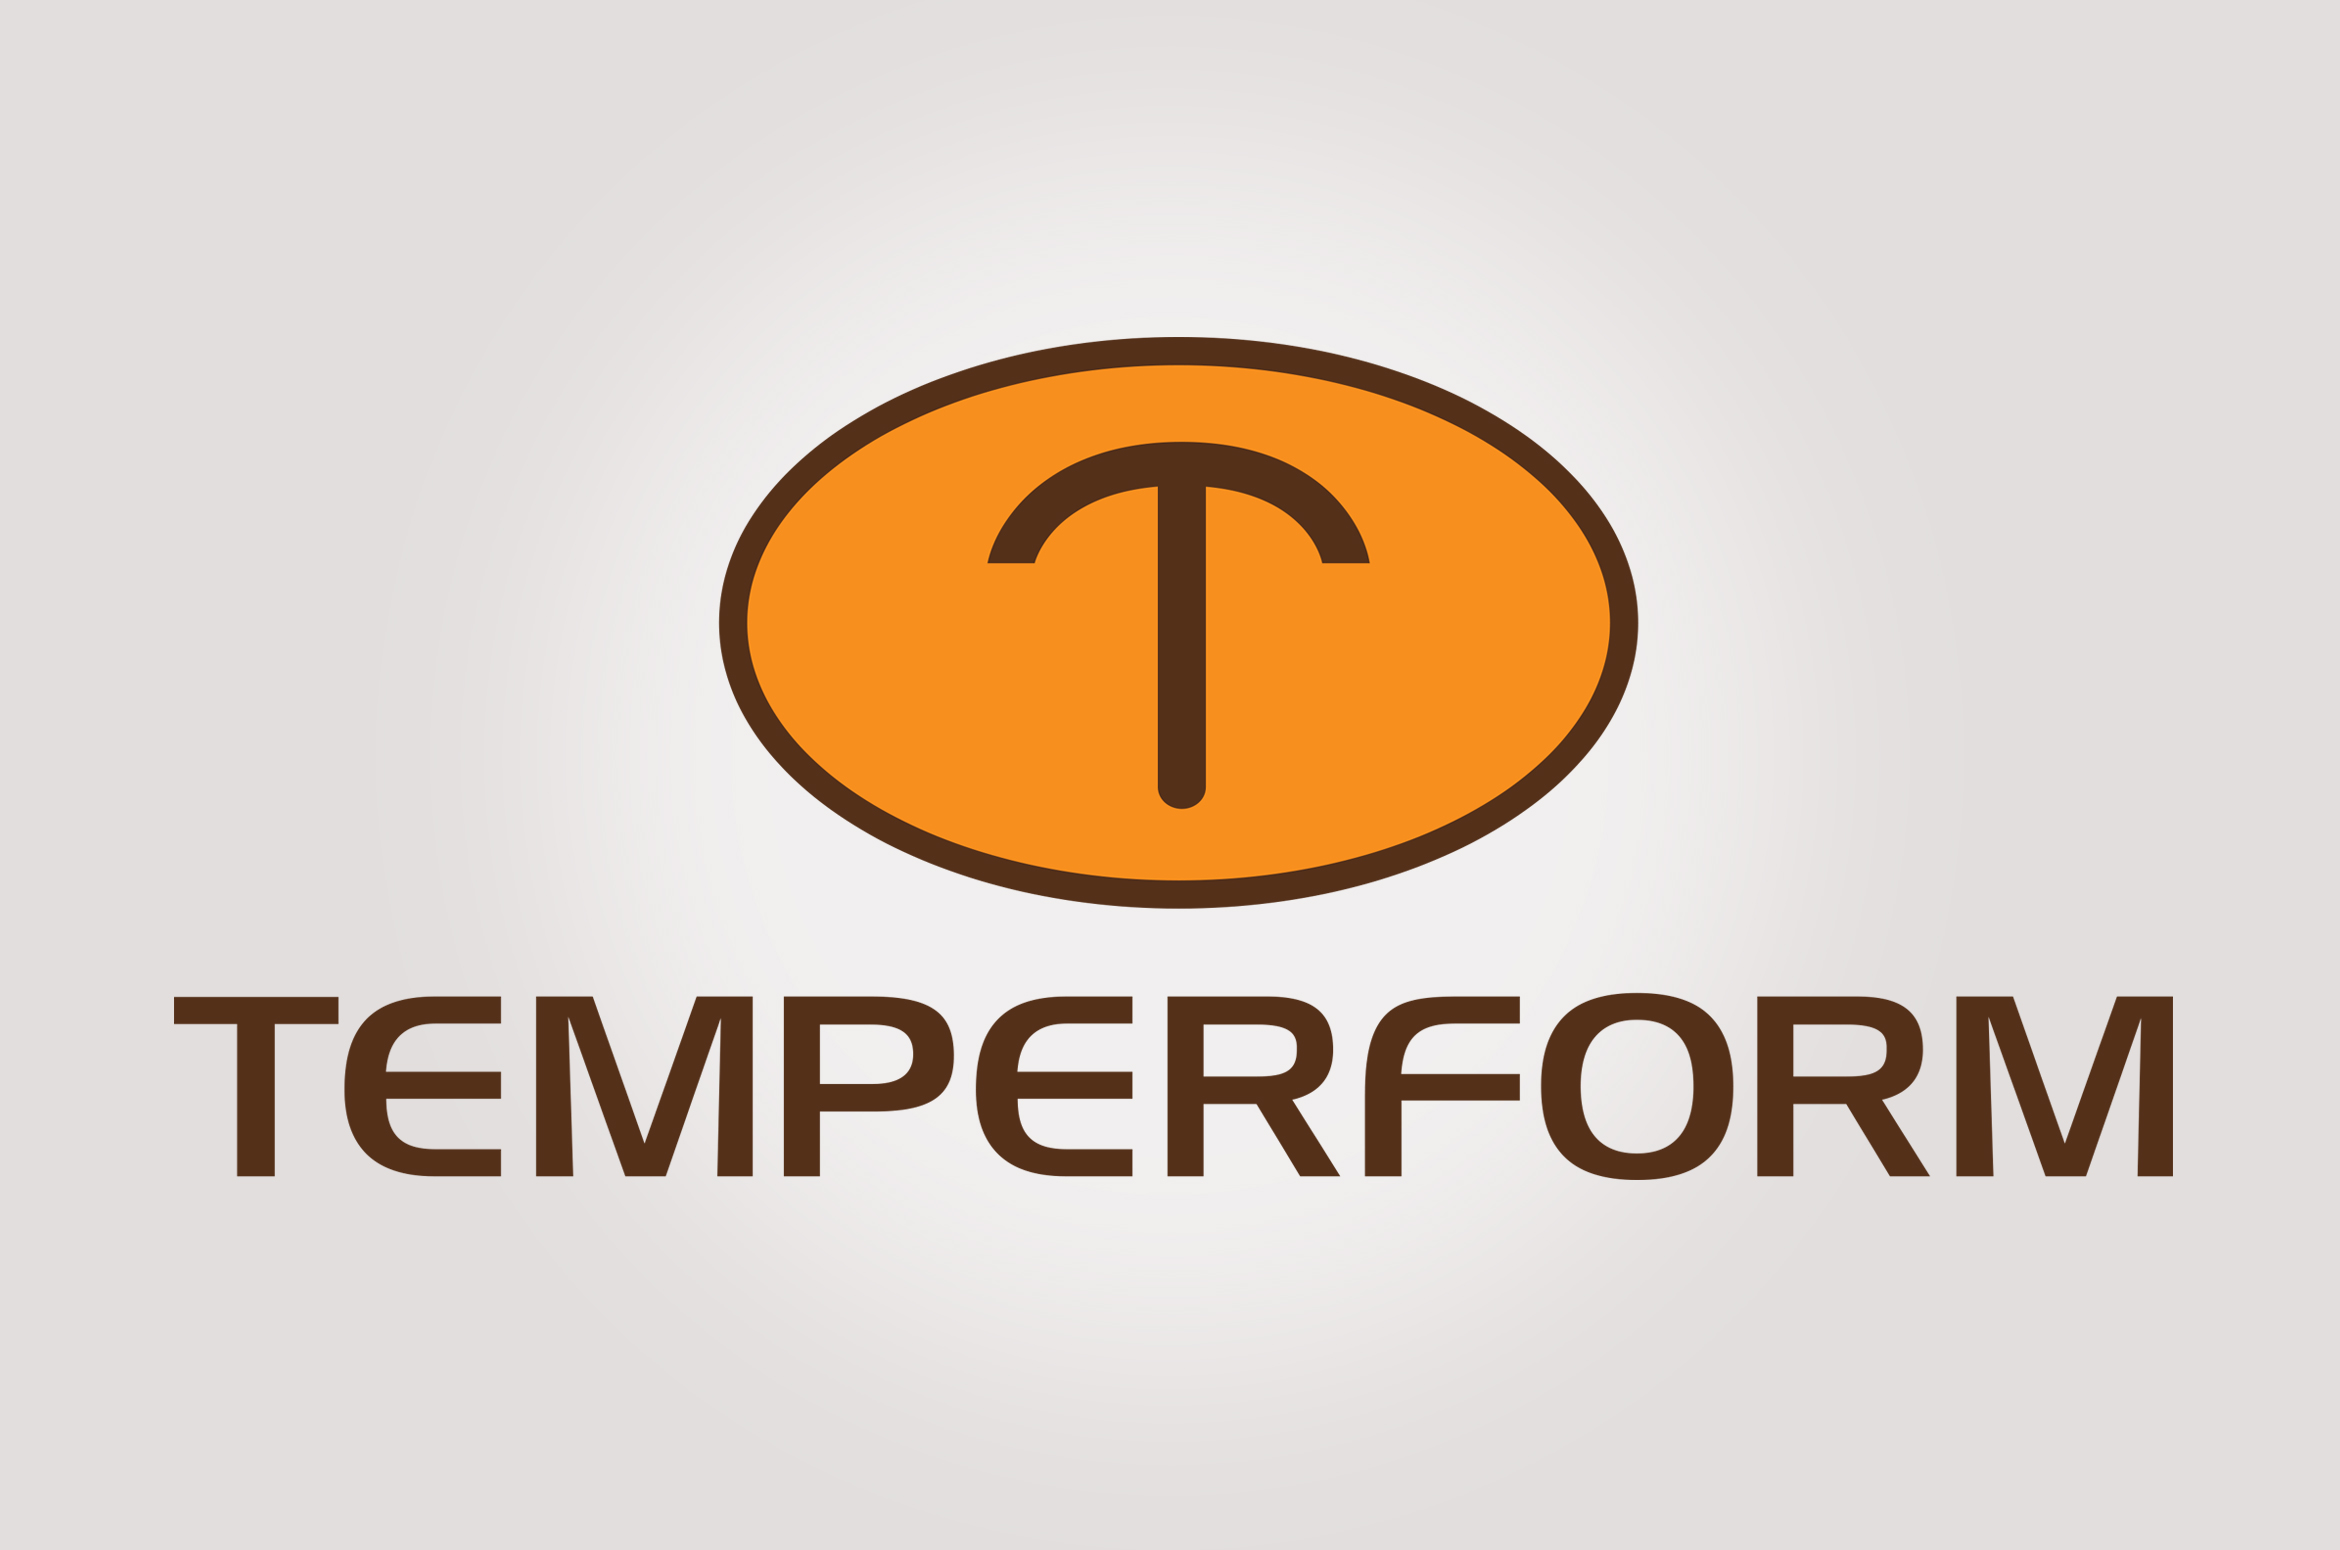 Temperform logo